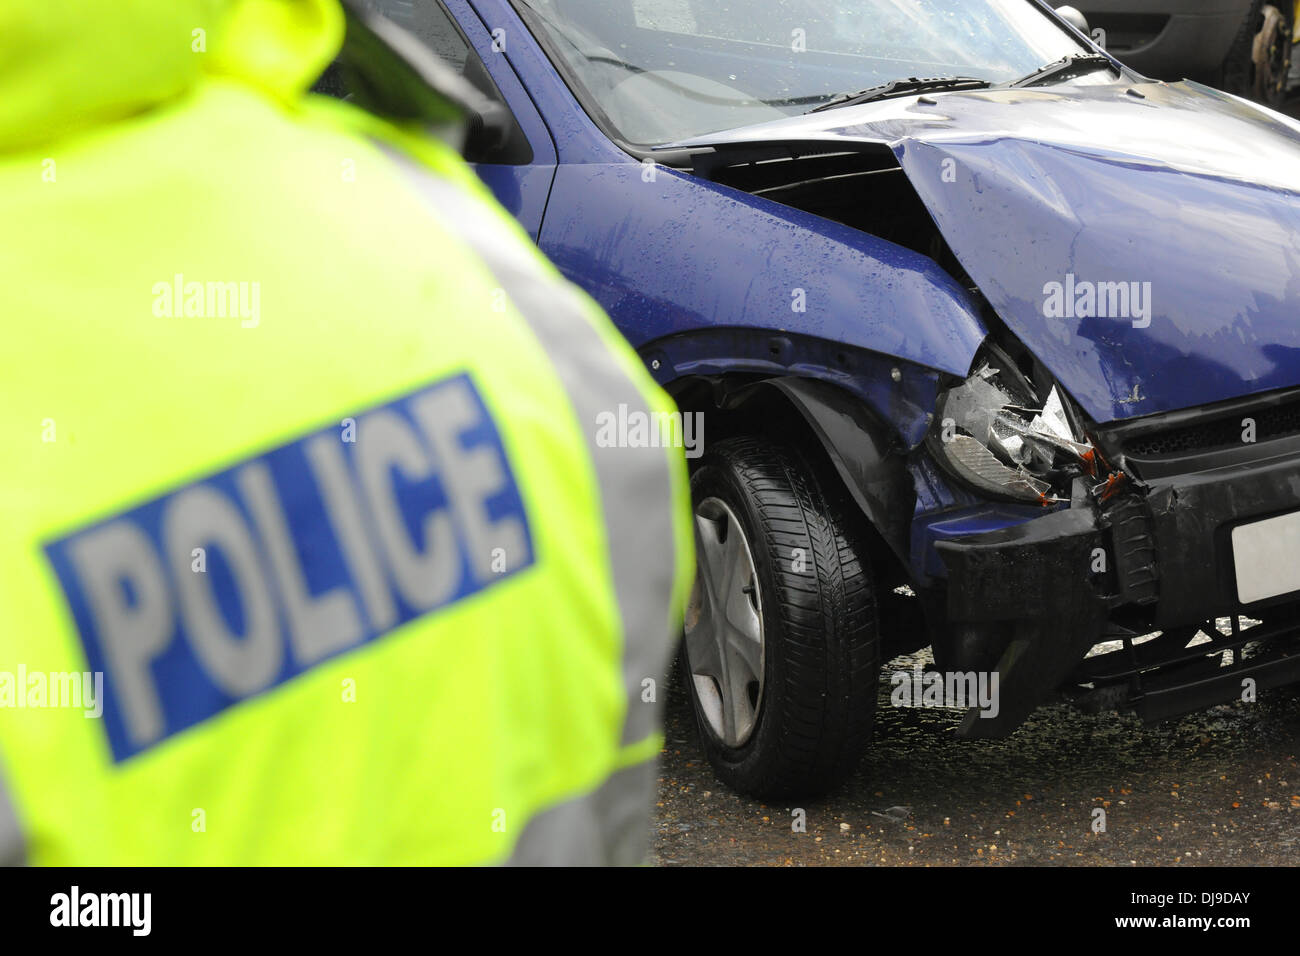 Police at the scene of a road traffic collision - Stock Image